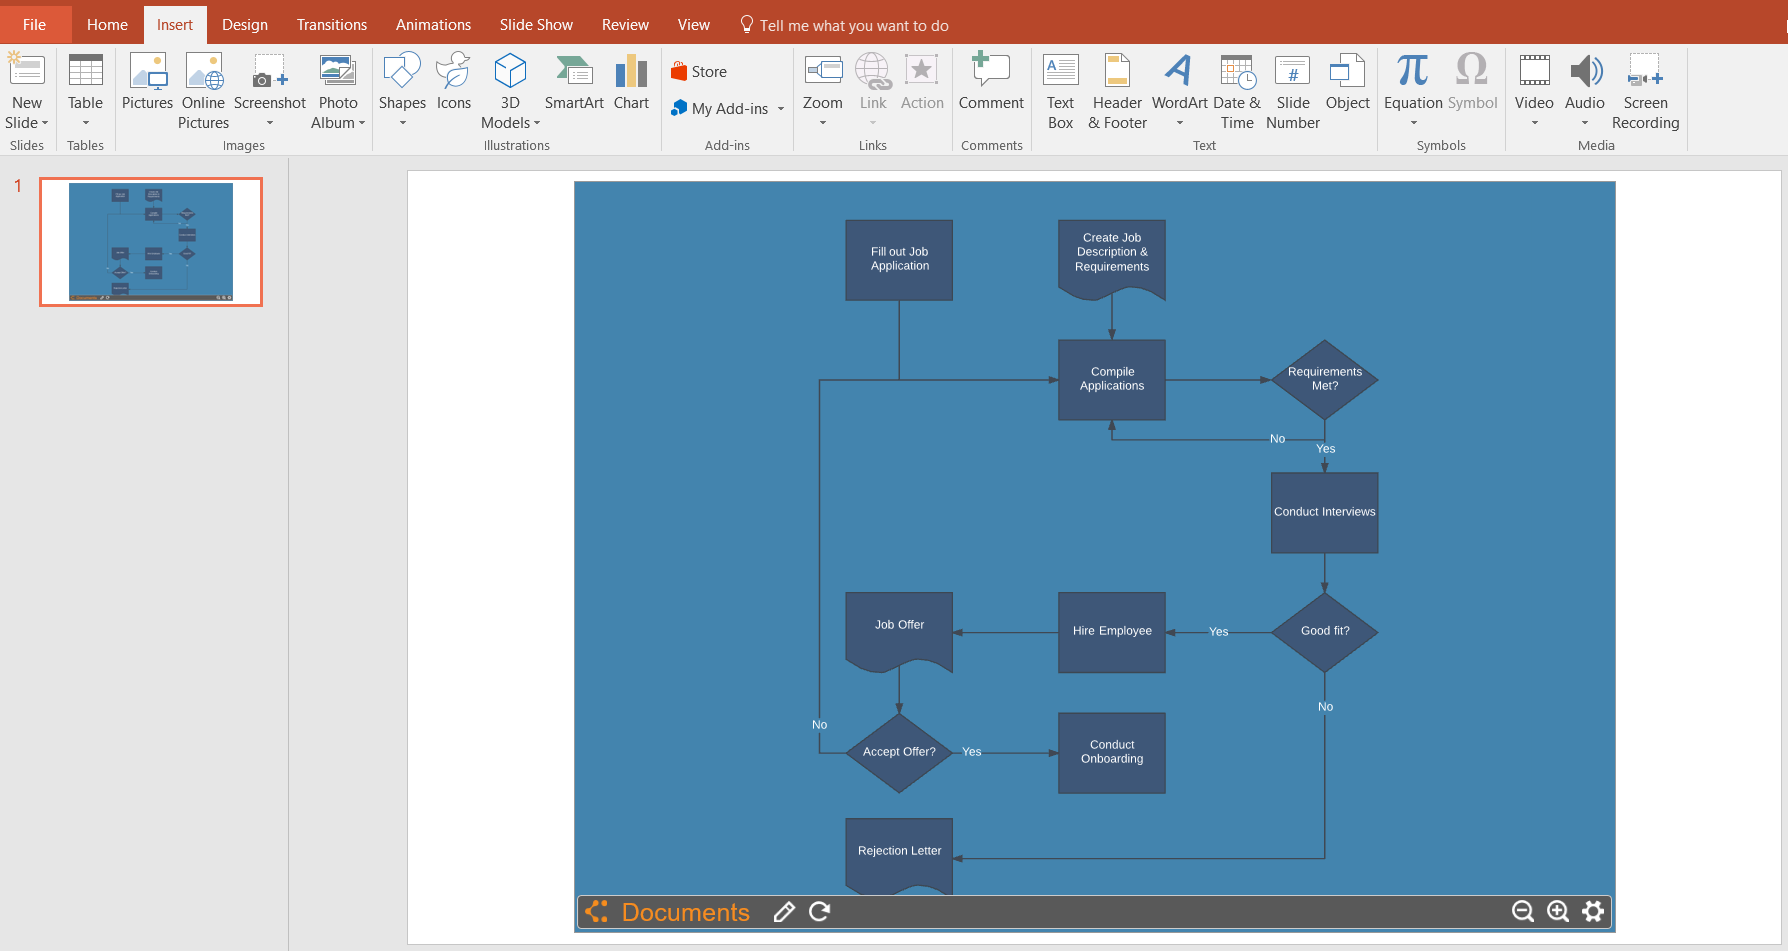 How To Make A Flowchart In Powerpoint Lucidchart Template Addition Data Structure Diagram On Line Open Your Presentation Go Add Ins And Select Within The Insert Tab